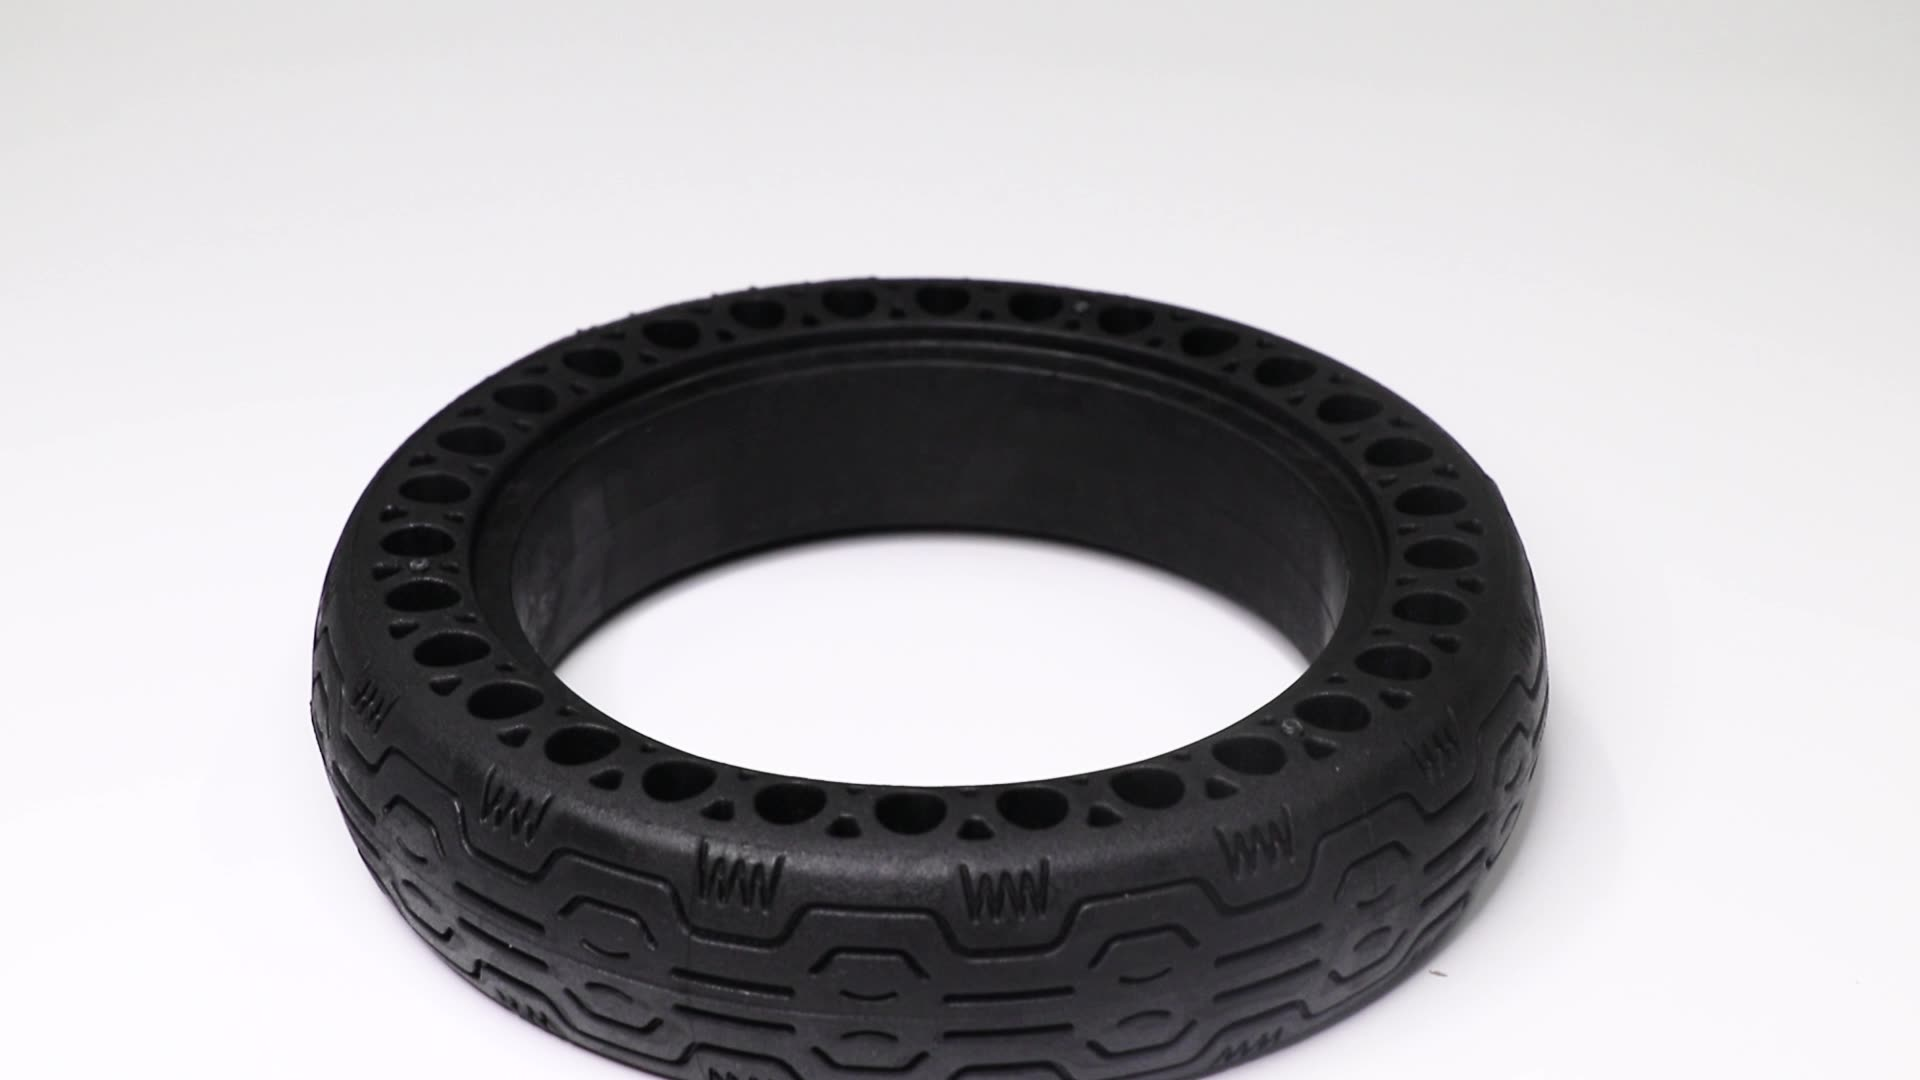 Colored scooter tyres 8.5inch honeycomb tires wheel for xiaomi m365 electric scooter